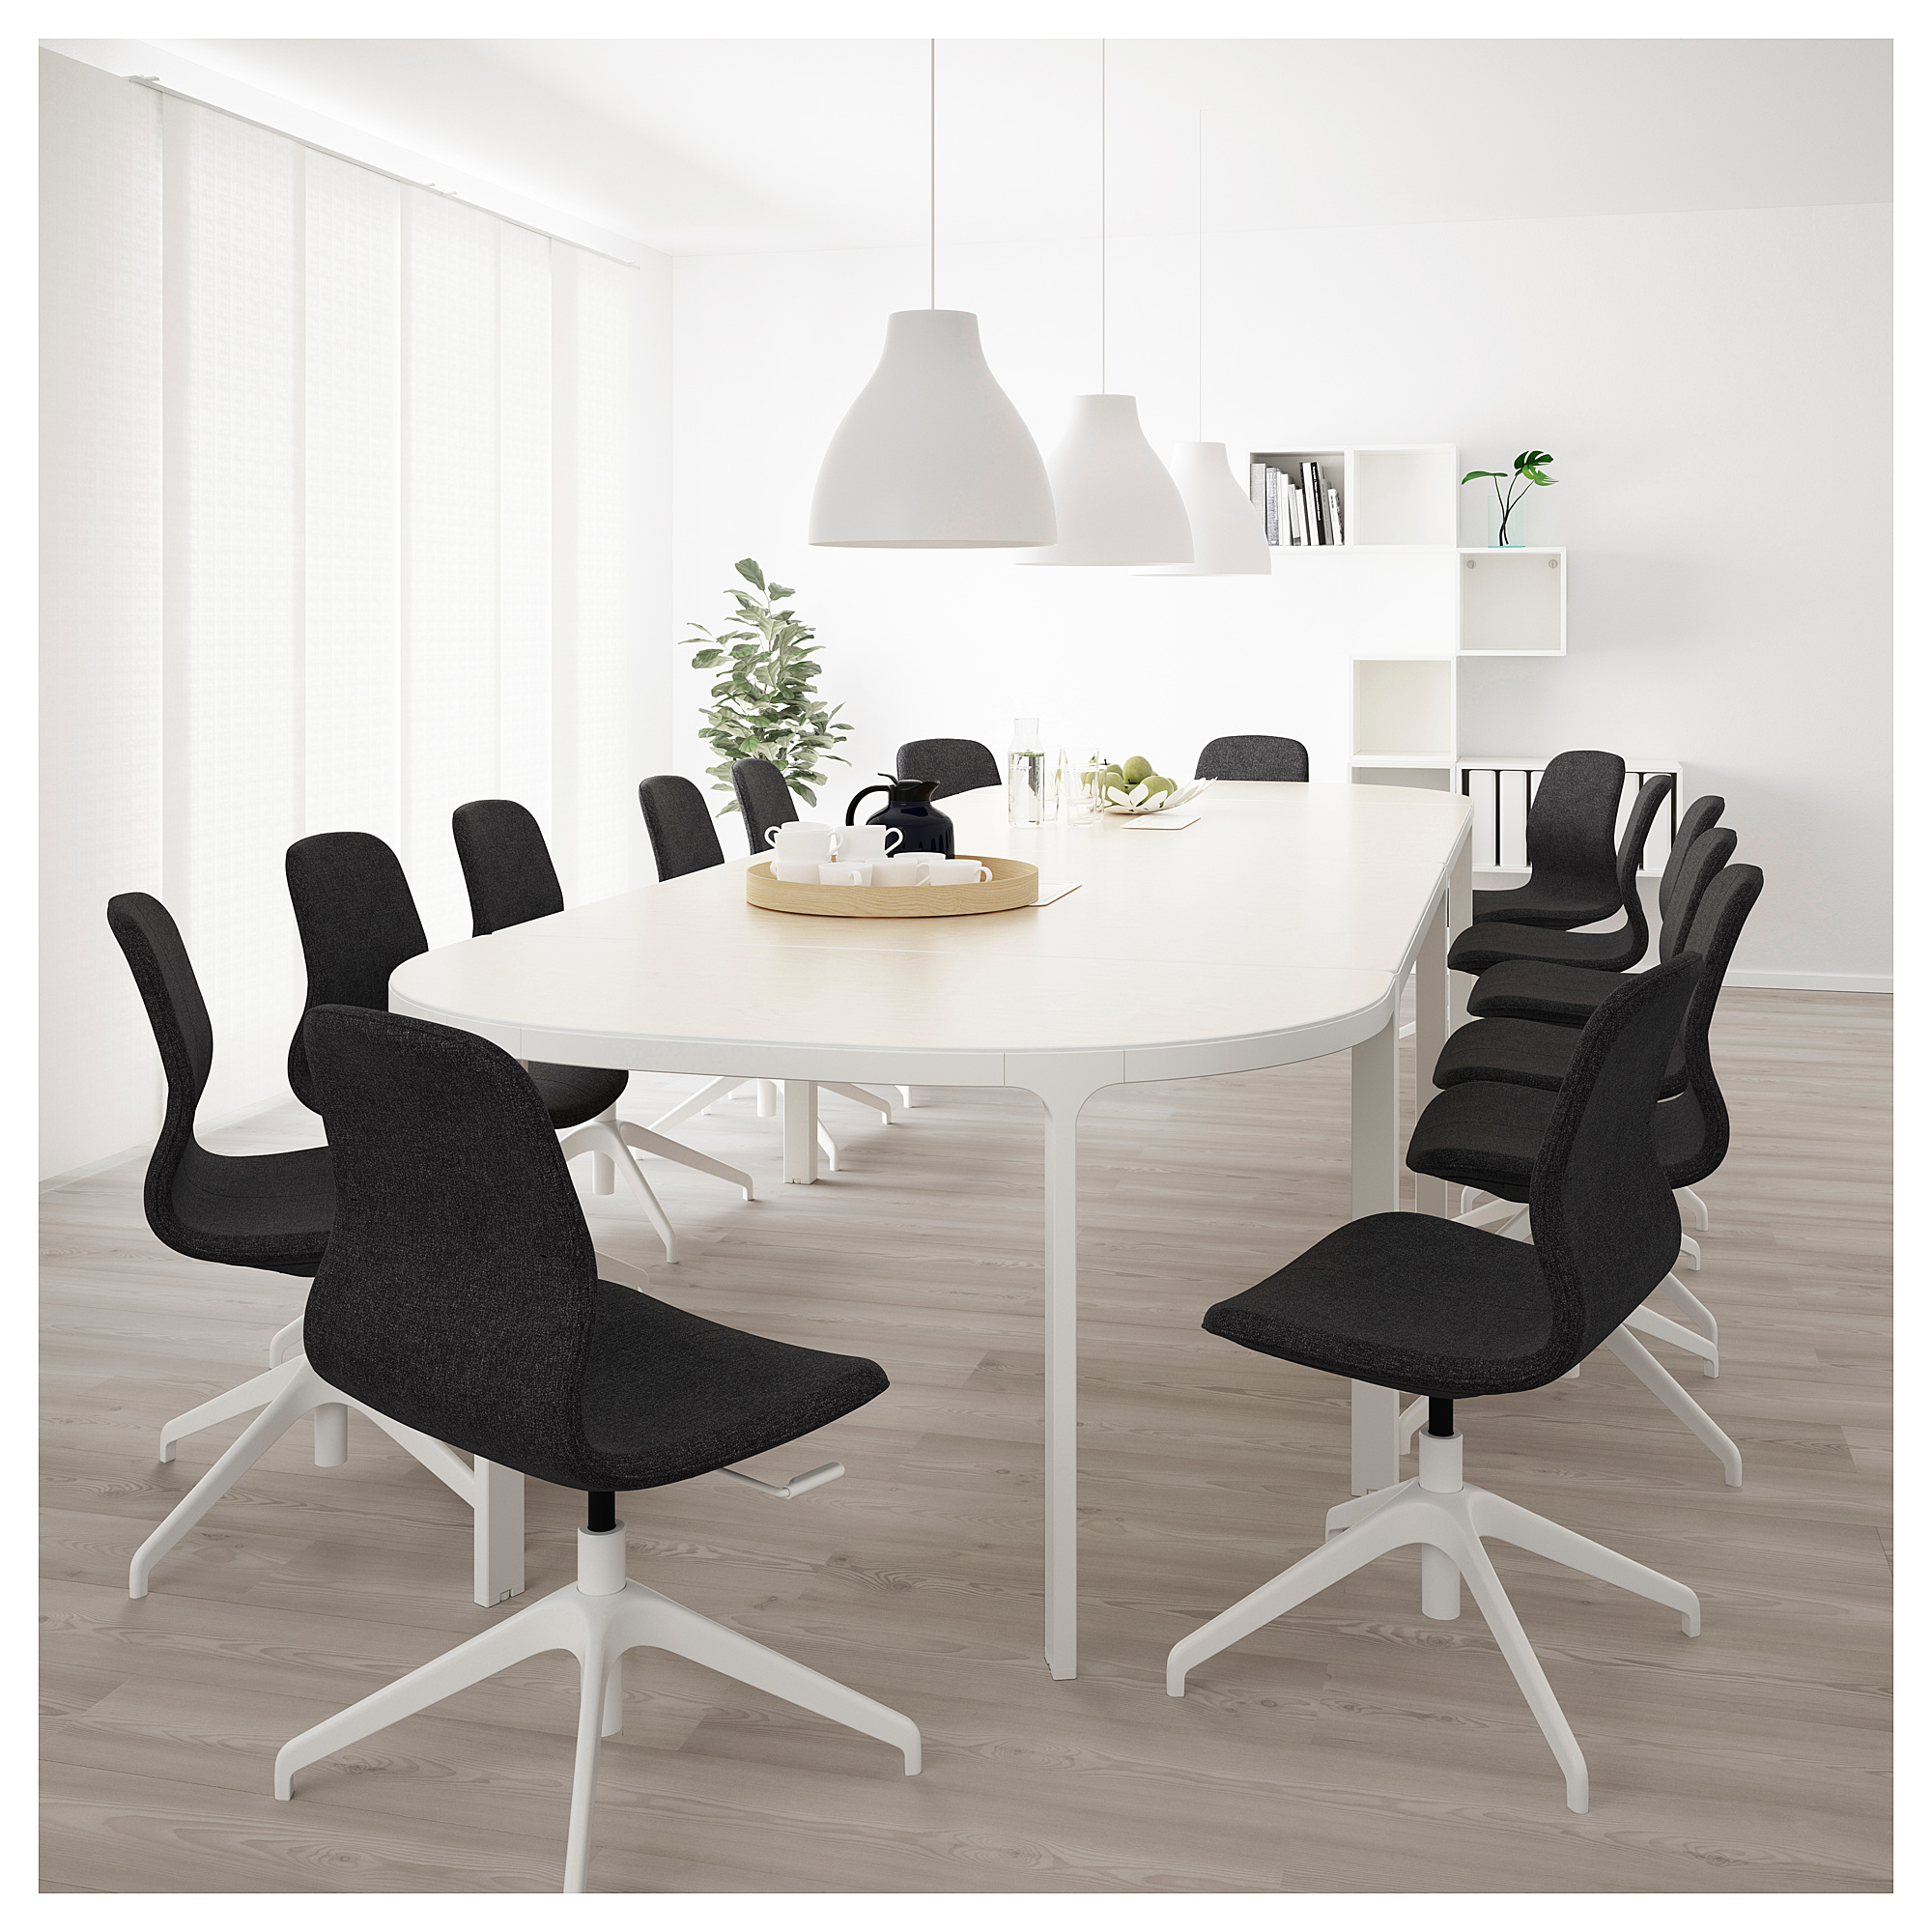 IKEA Latvia Shop For Furniture Lighting Home Accessories More - Ikea conference room table